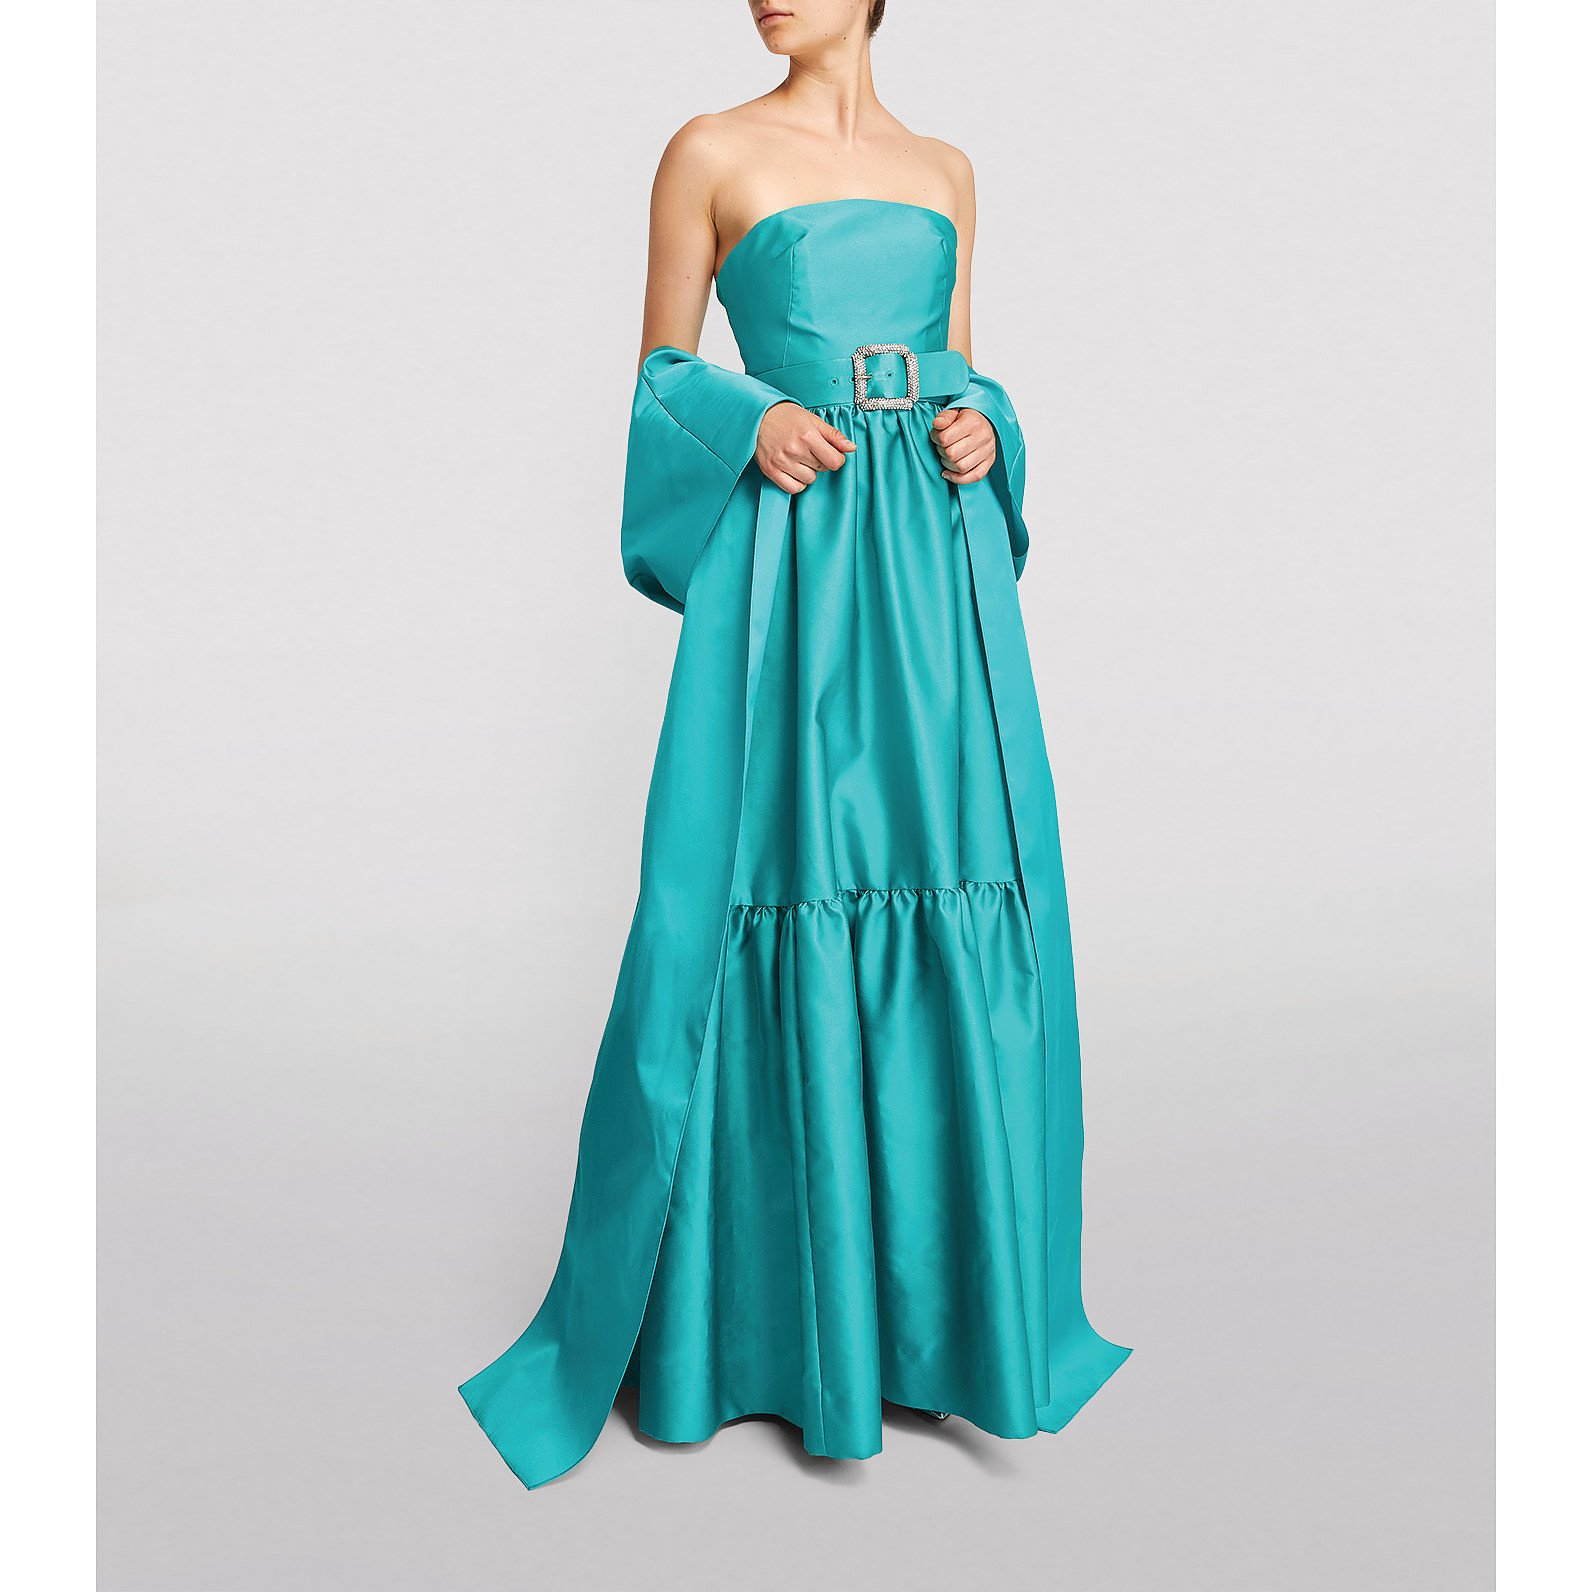 Monique Lhuillier Sateen Belted Strapless Gown